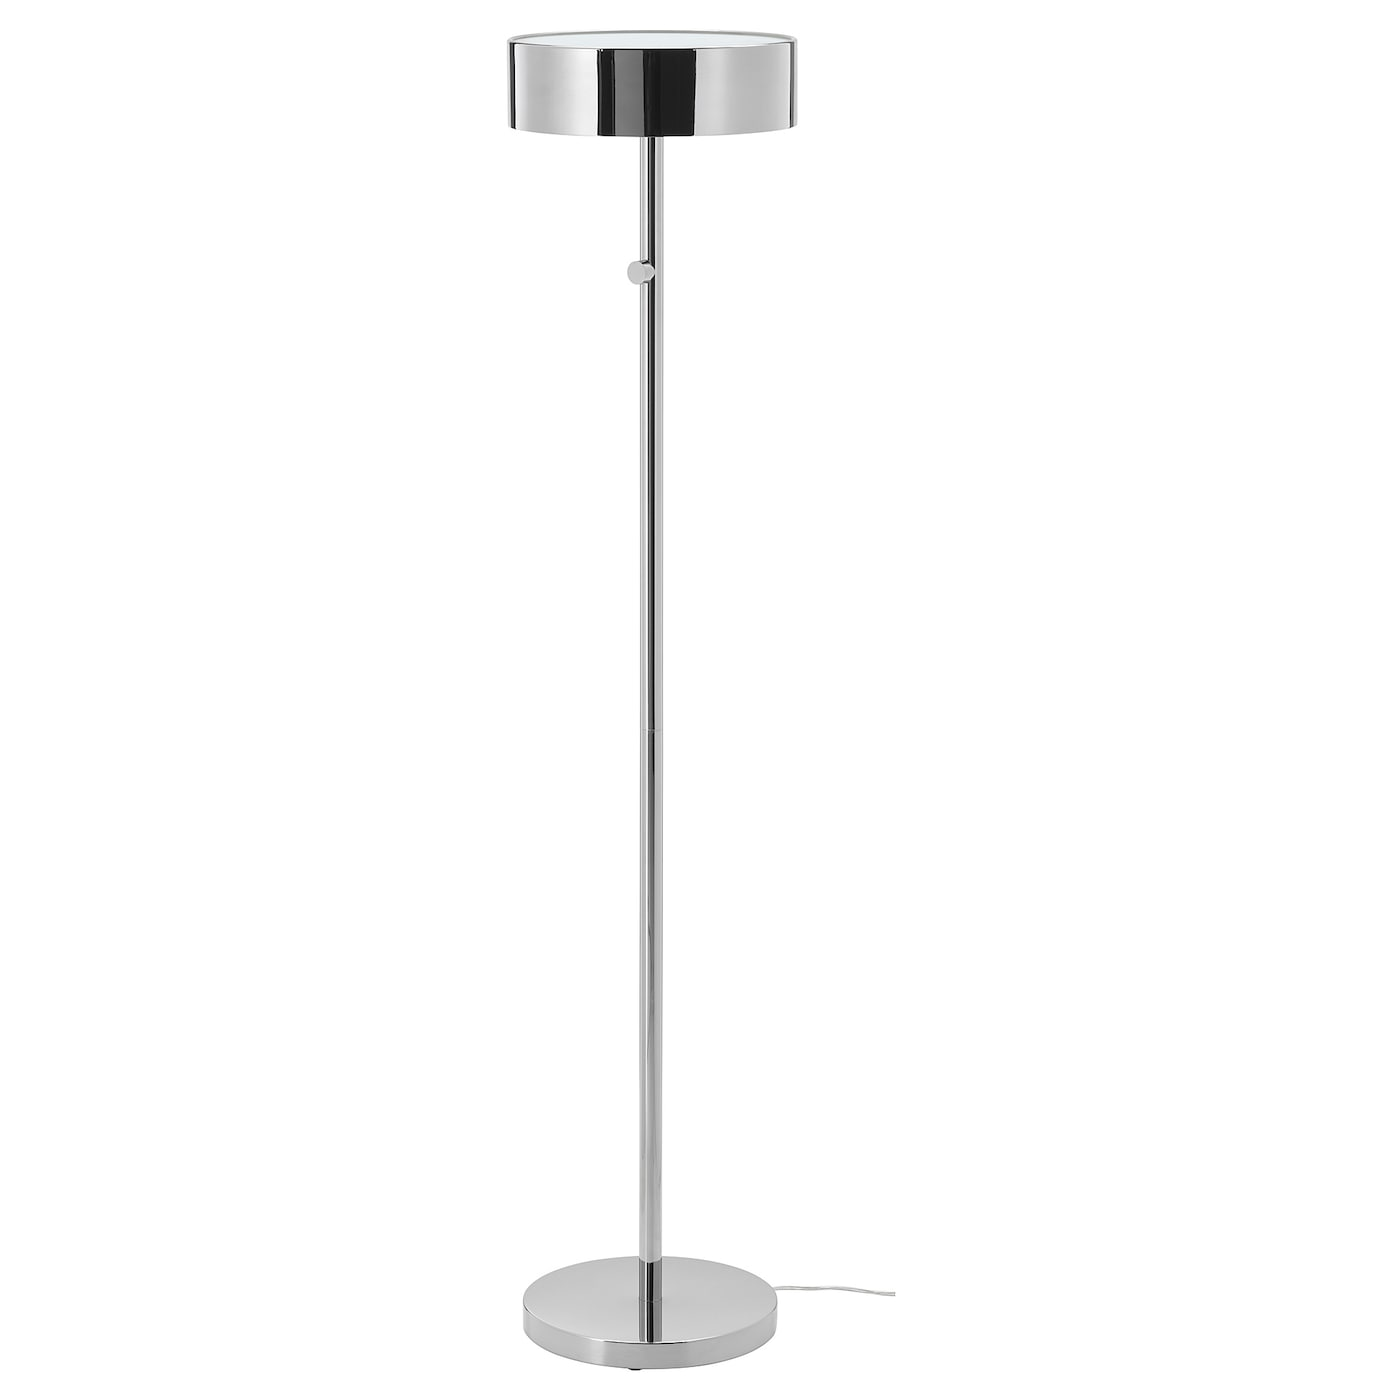 IKEA STOCKHOLM 2017 floor lamp Integrated dimmer, to give general light or mood light.